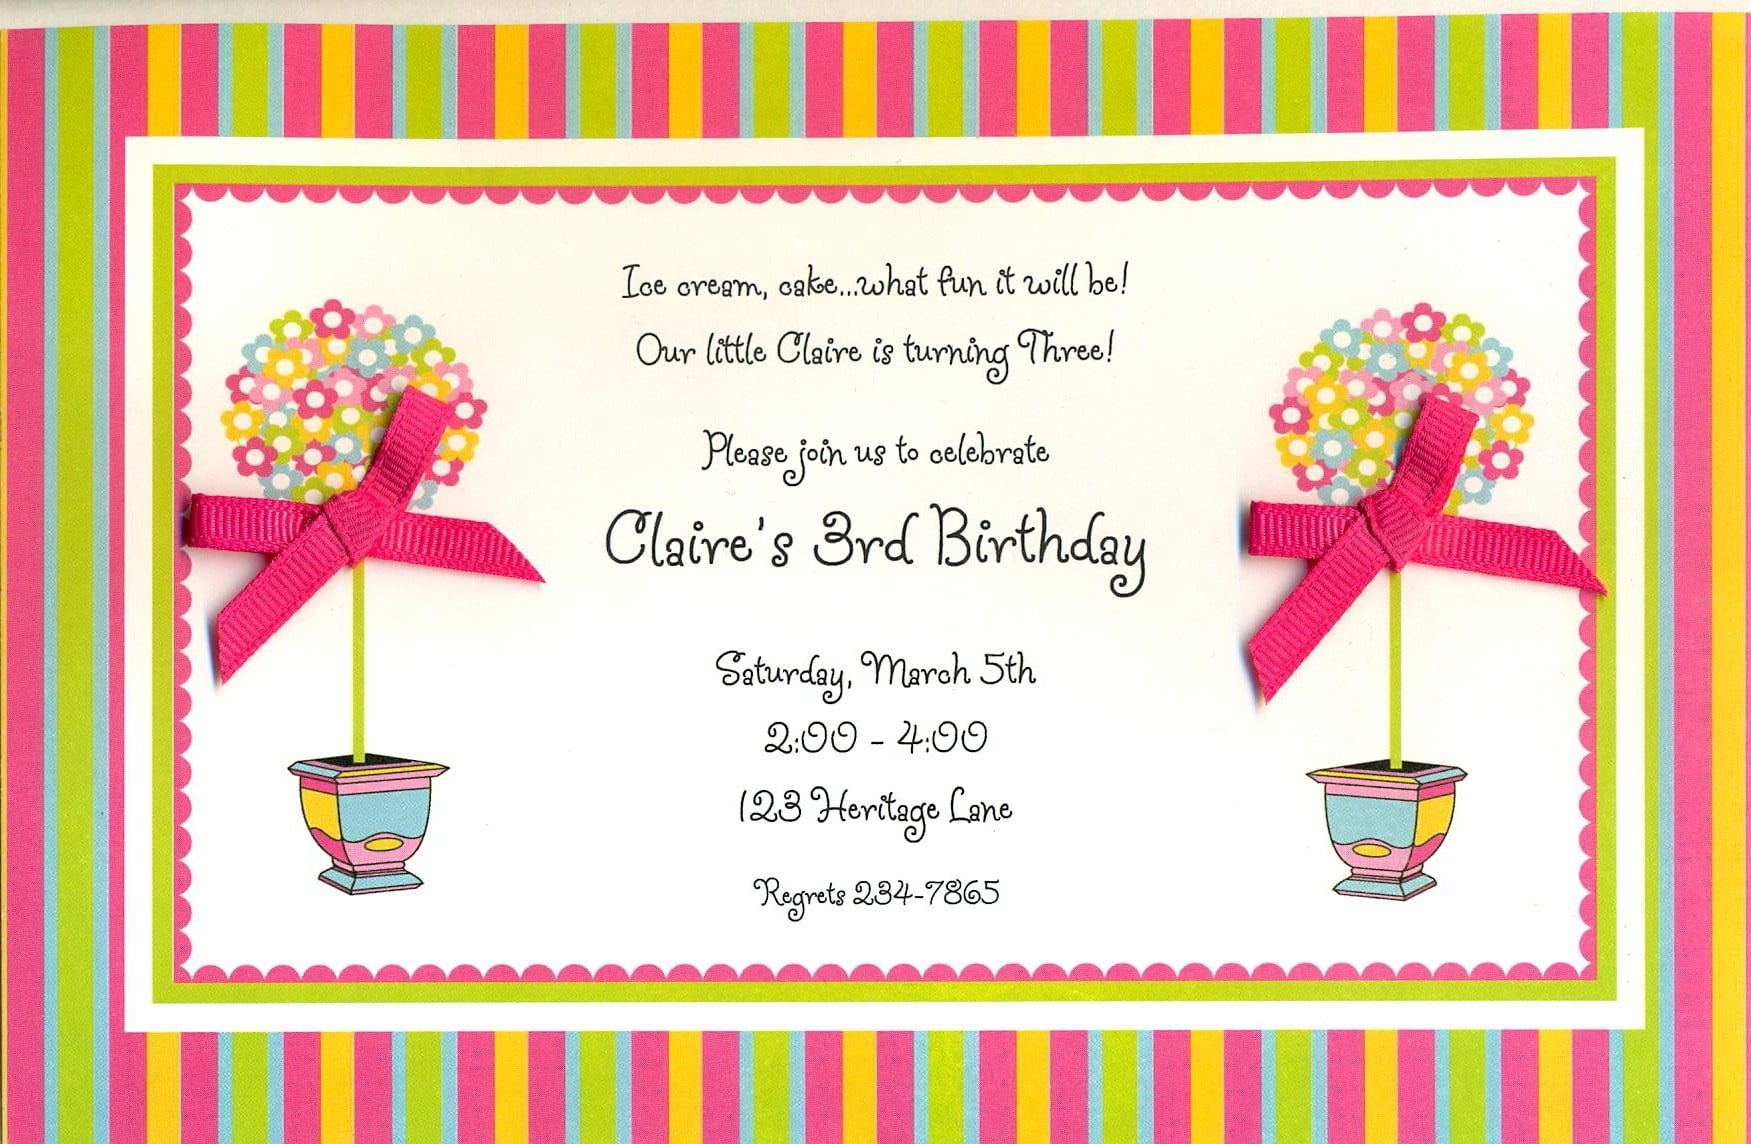 Birthday dinner invitation wording ideas bagvania free printable bright topiaries brunch birthday dinner invitation wording ideas filmwisefo Gallery